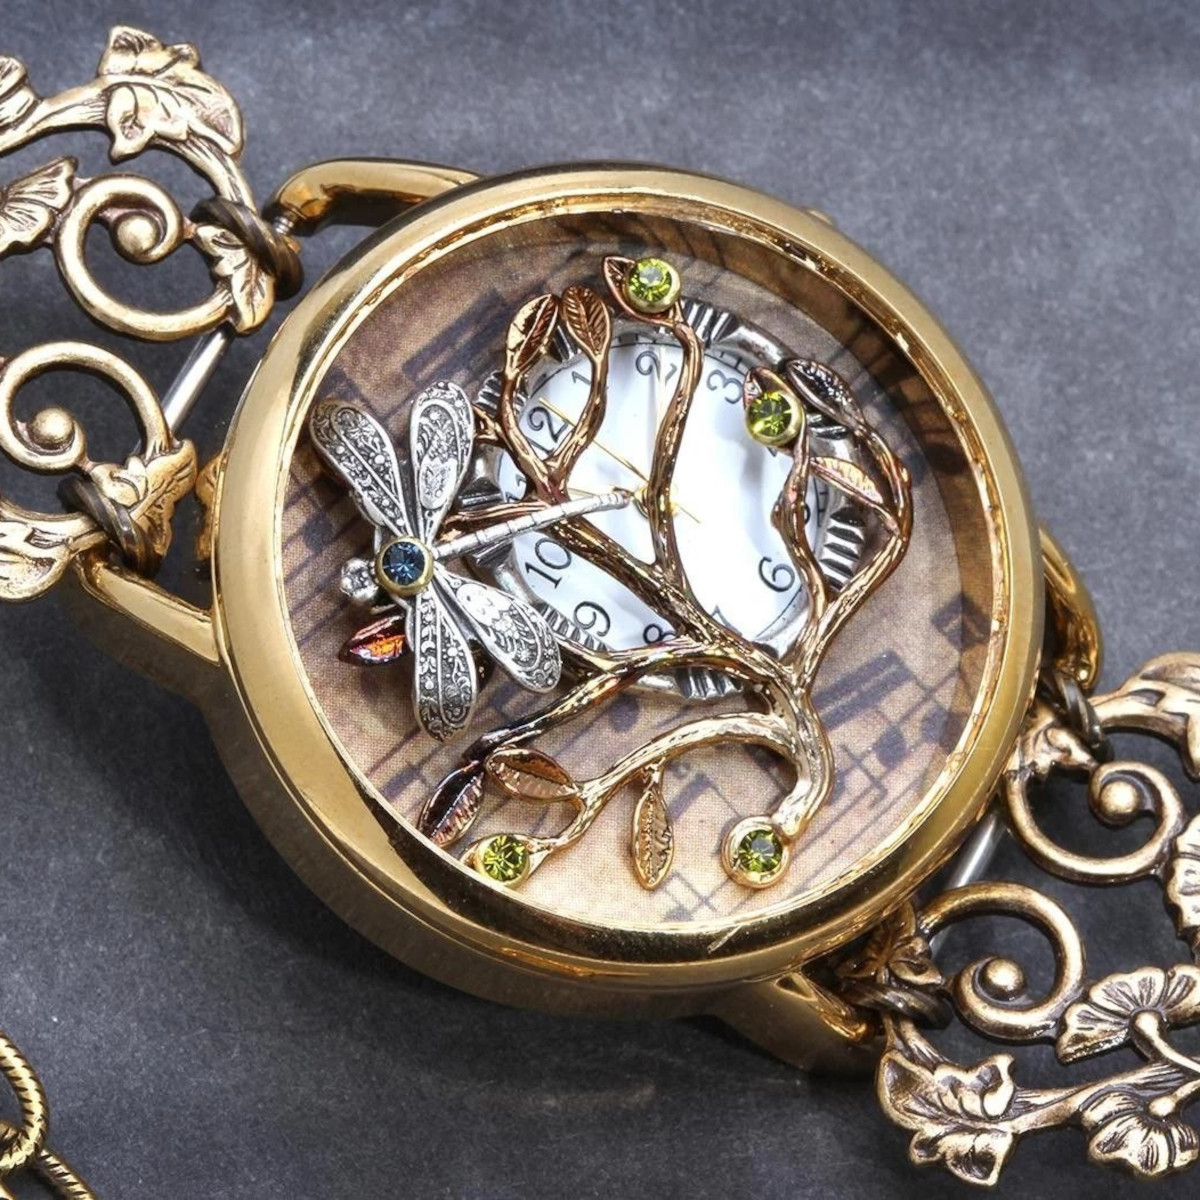 Steampunk Wrist Watch - A Definite Buyers Guide